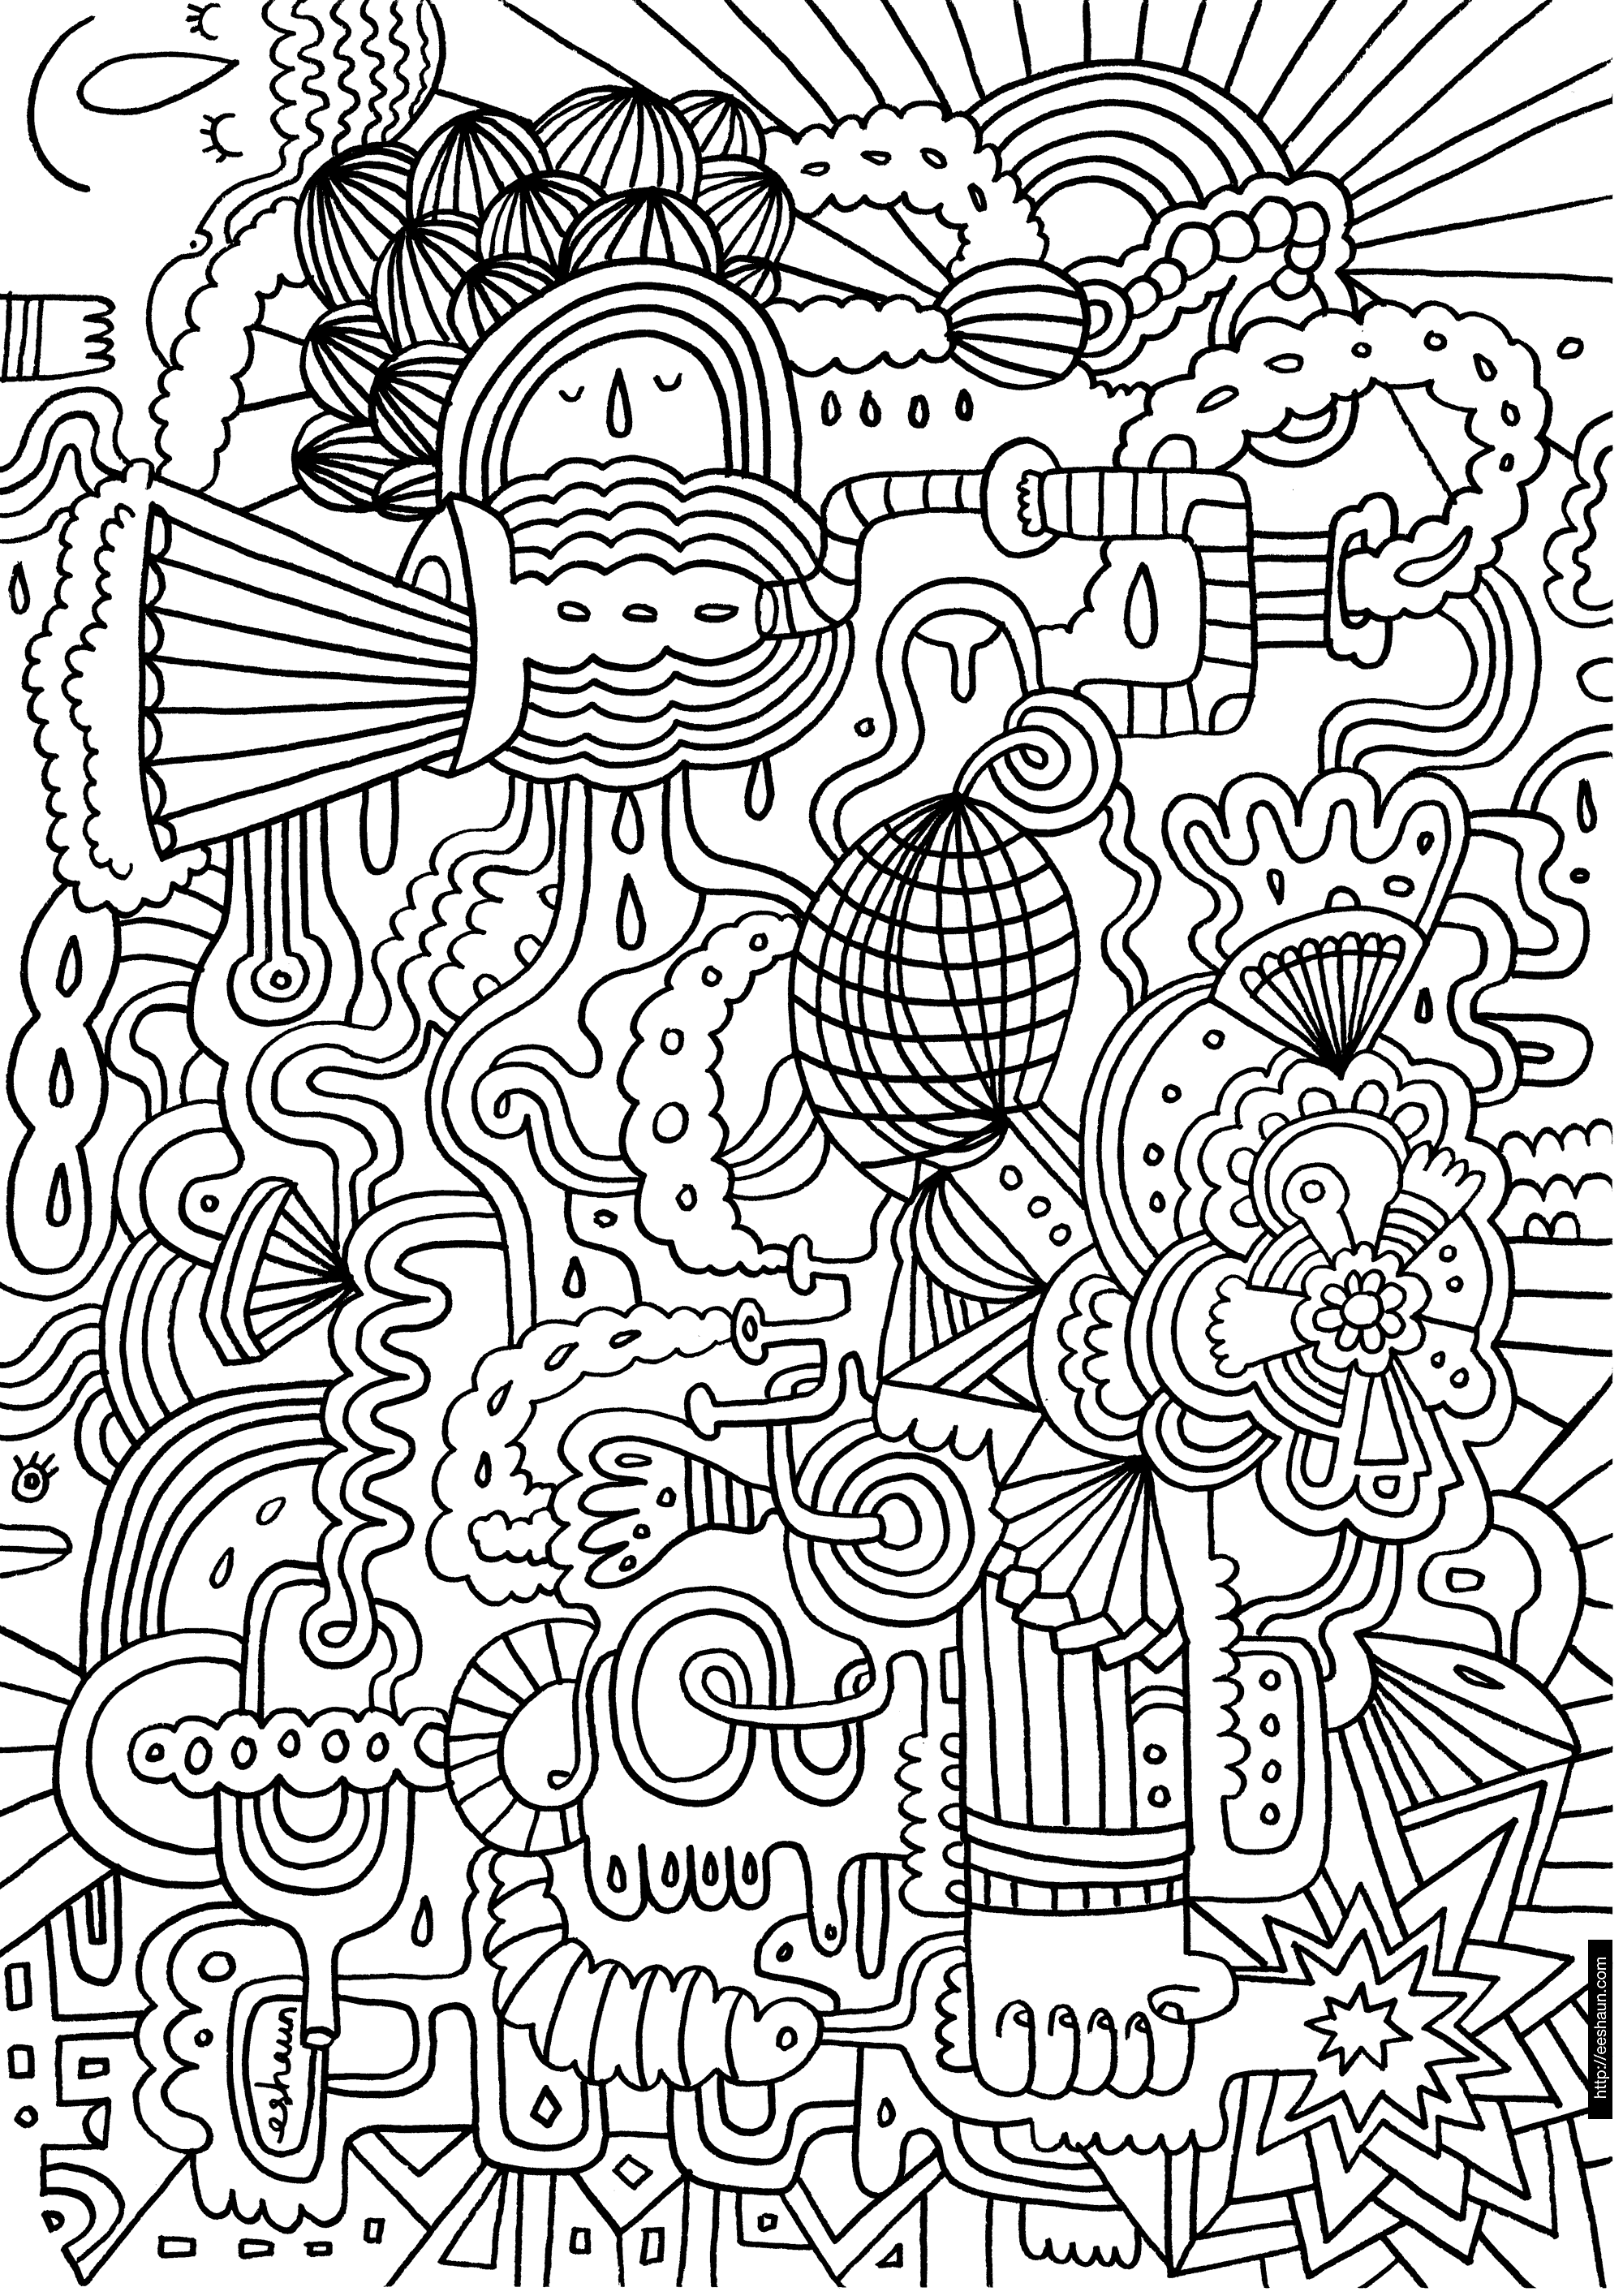 hard coloring pages - Free Large Images | Adult Coloring Pages ...